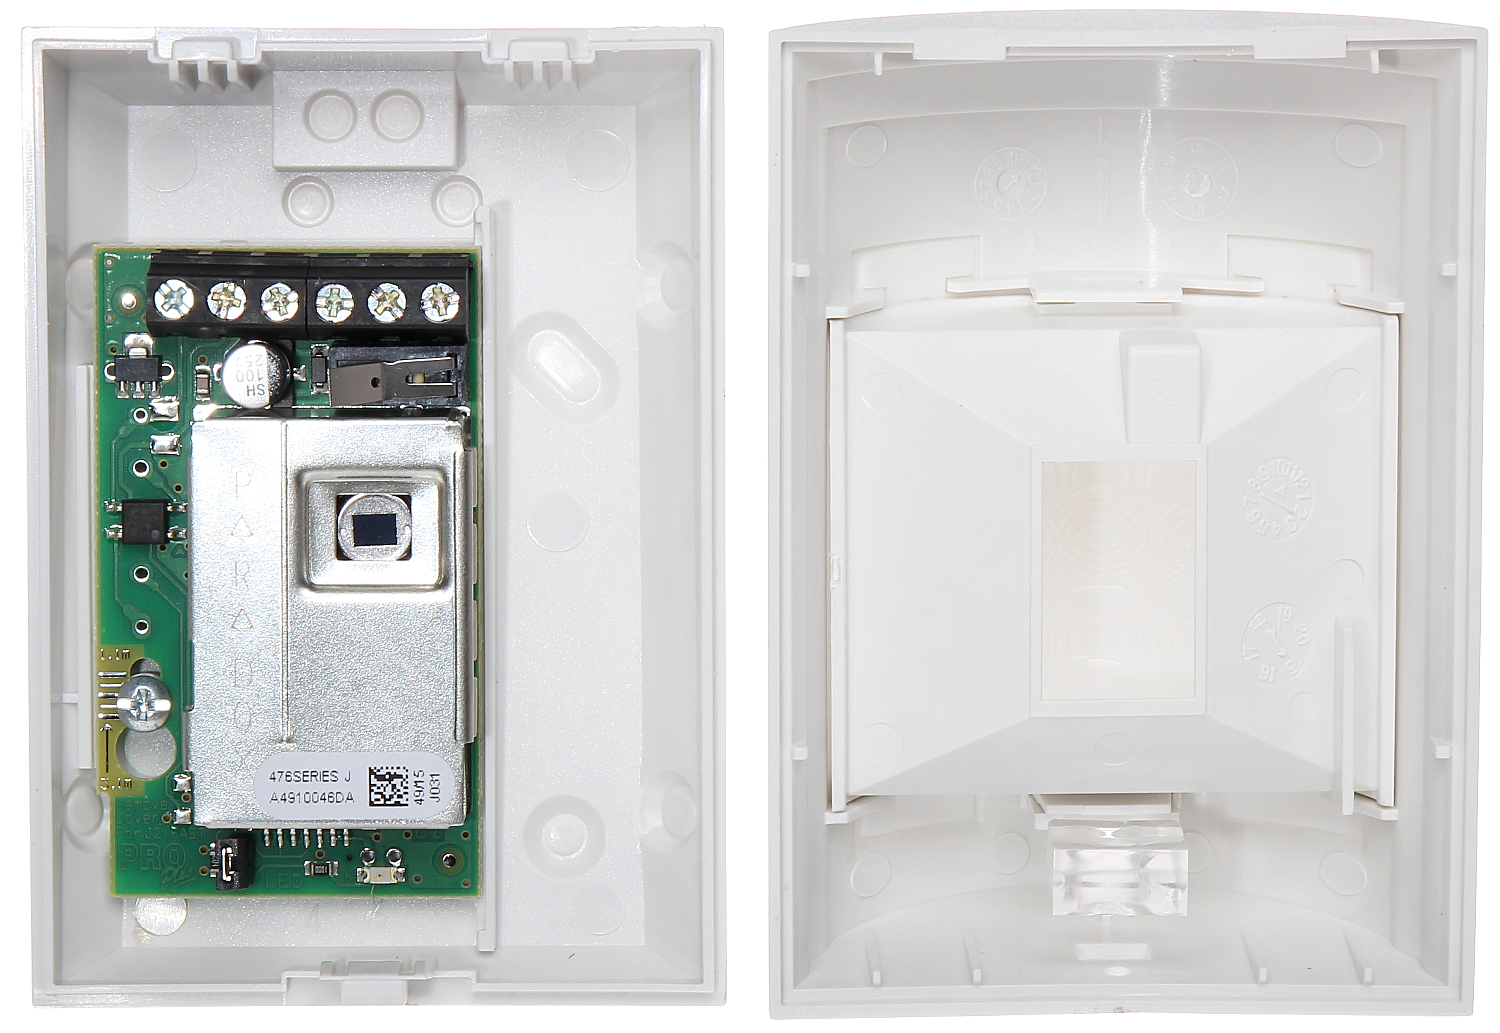 PIR DETECTOR PRO-PLUS PARADOX - Wired PIR Detectors ... on